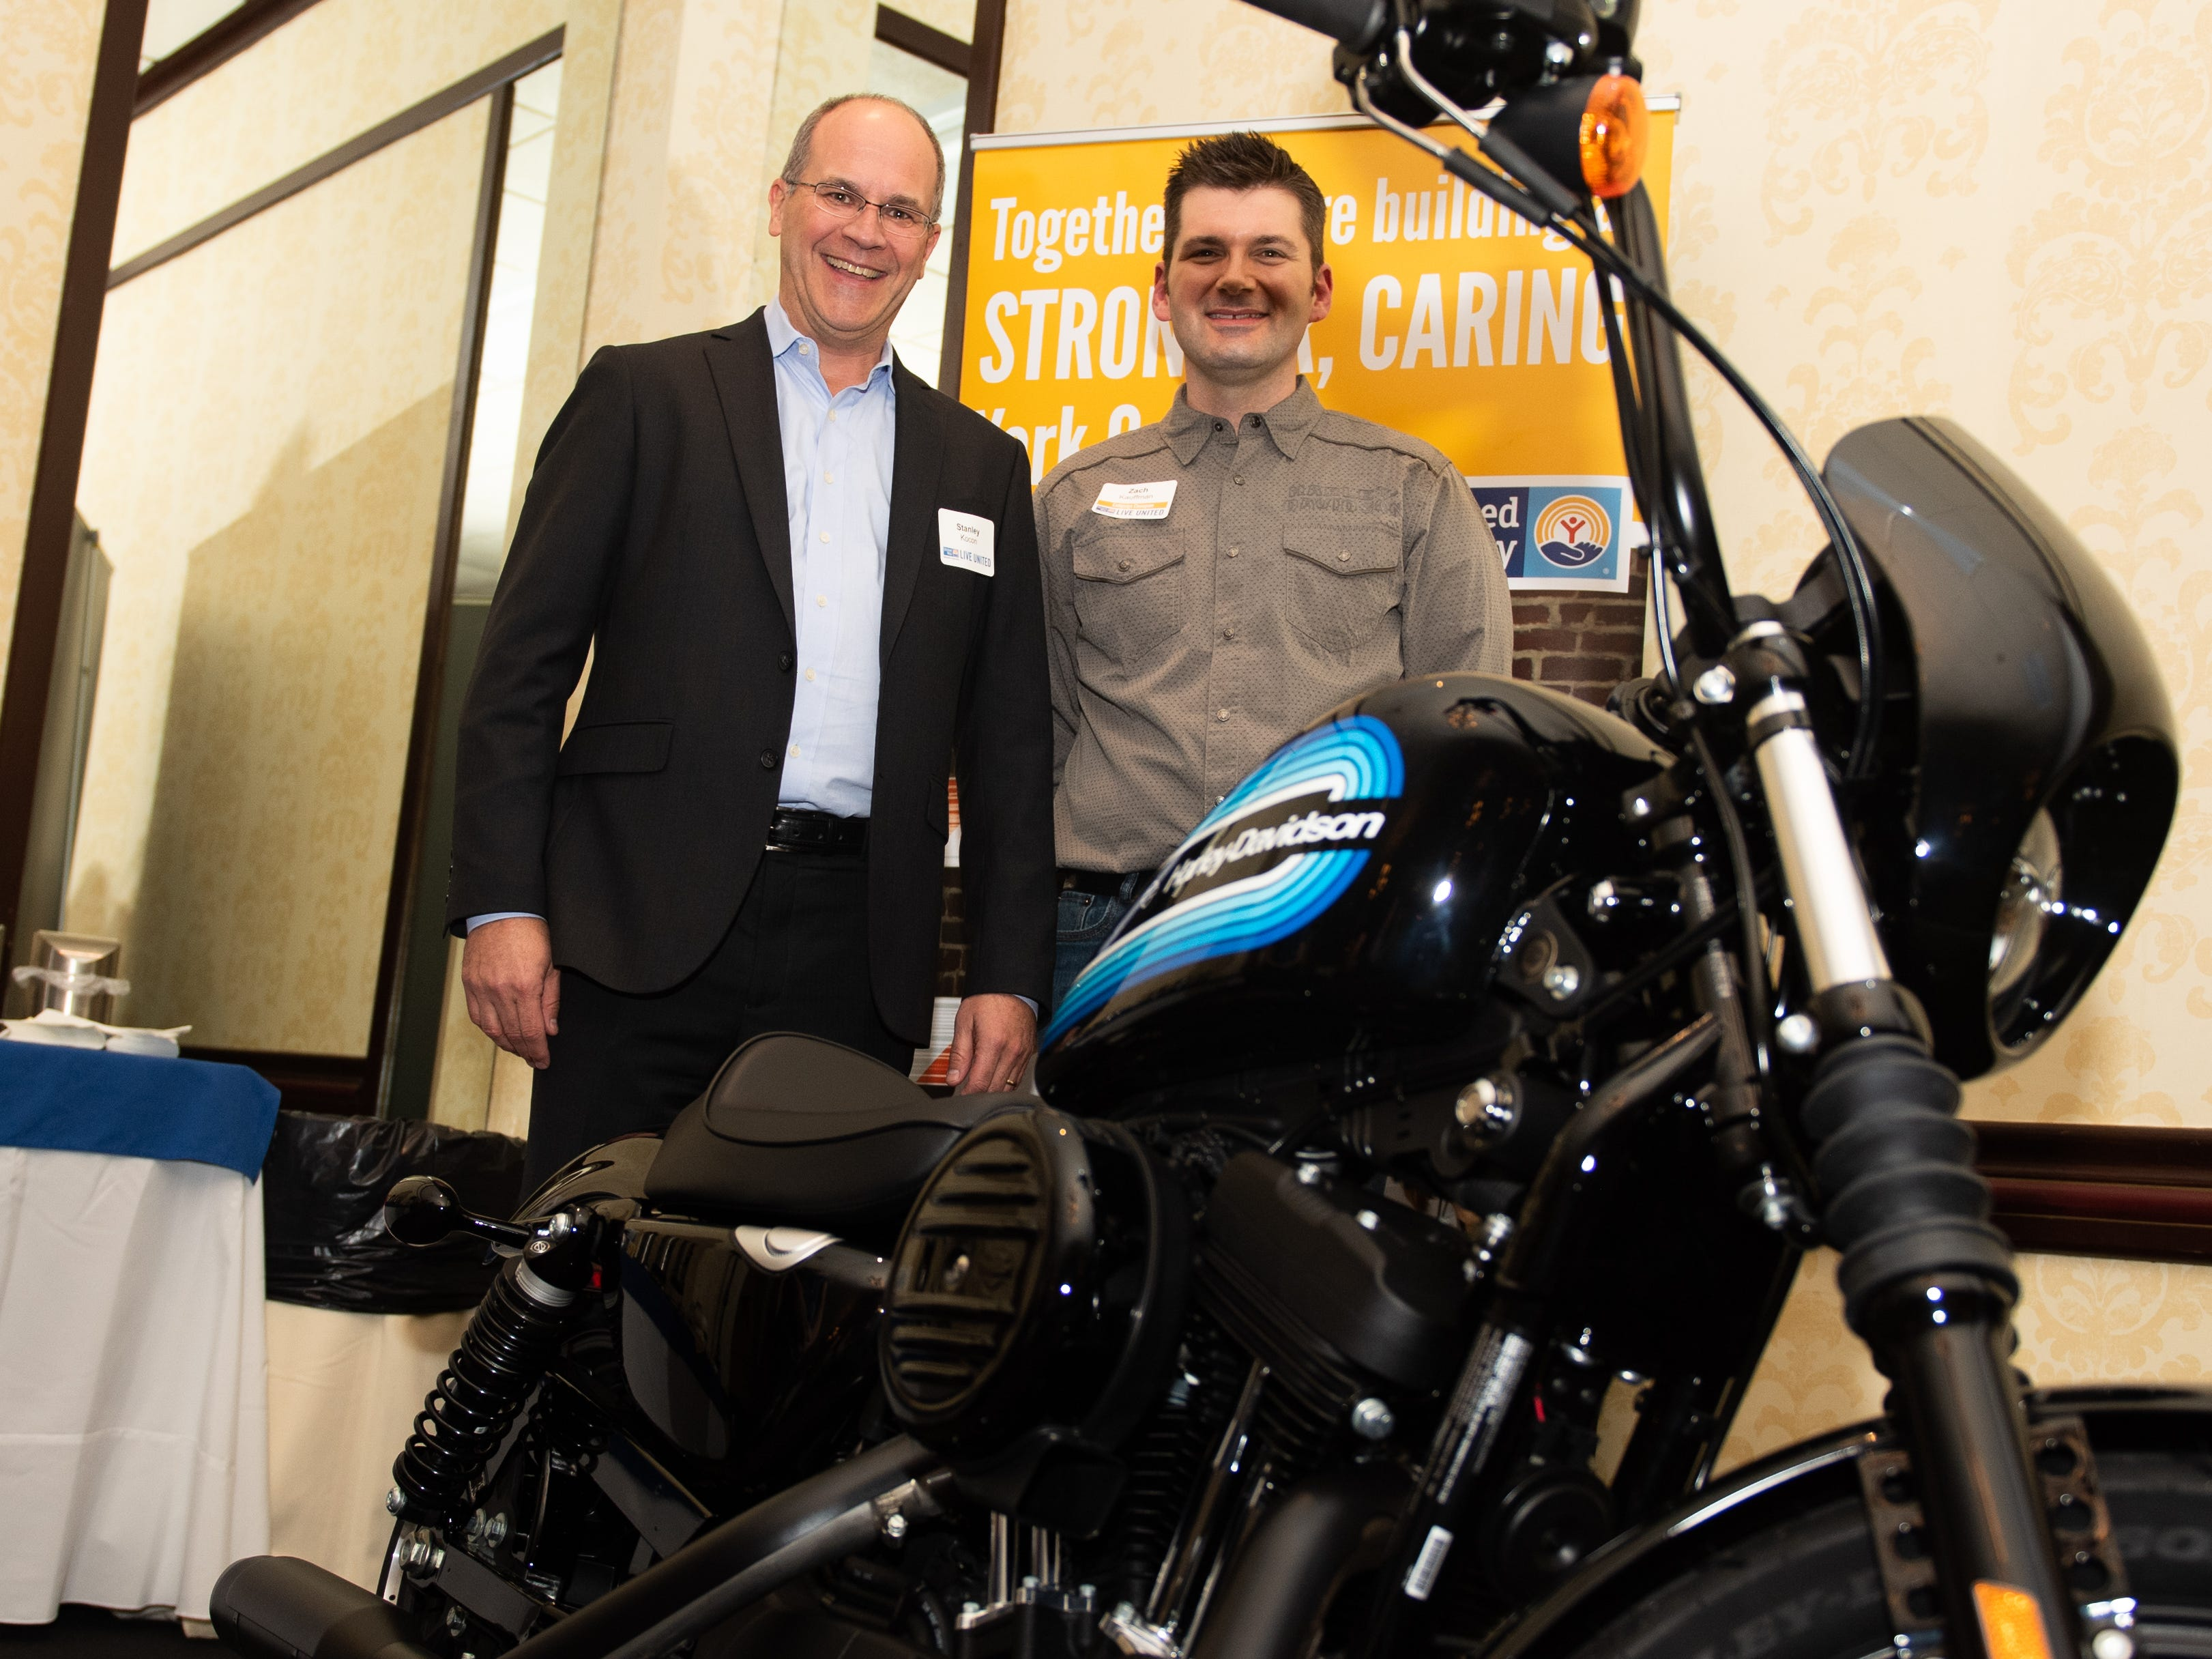 Grand prize winner Stanley Kocon can't wait to take his new Harley-Davidson motorcycle home, February 7, 2019.